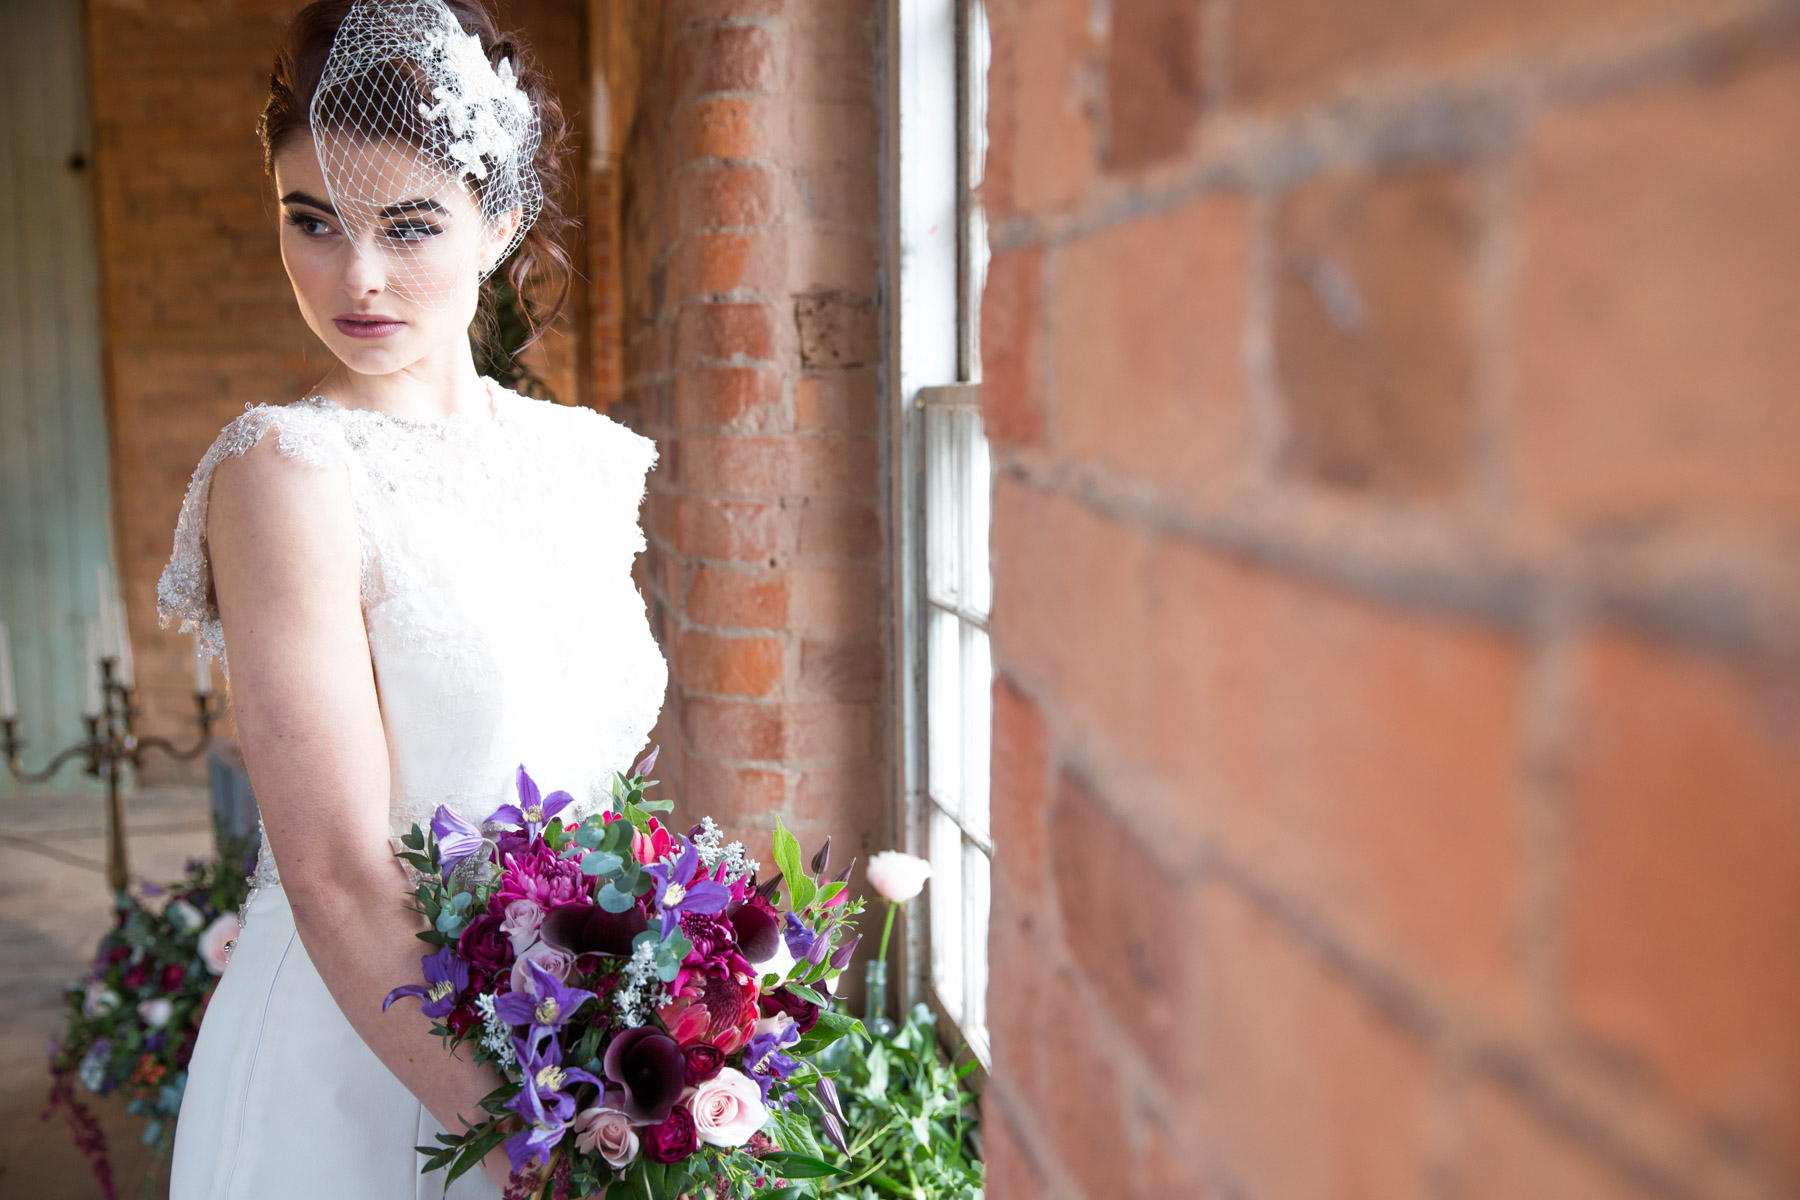 The West Mill at Darley Abbey Mills Styled Wedding Shoot by Richard Murgatroyd